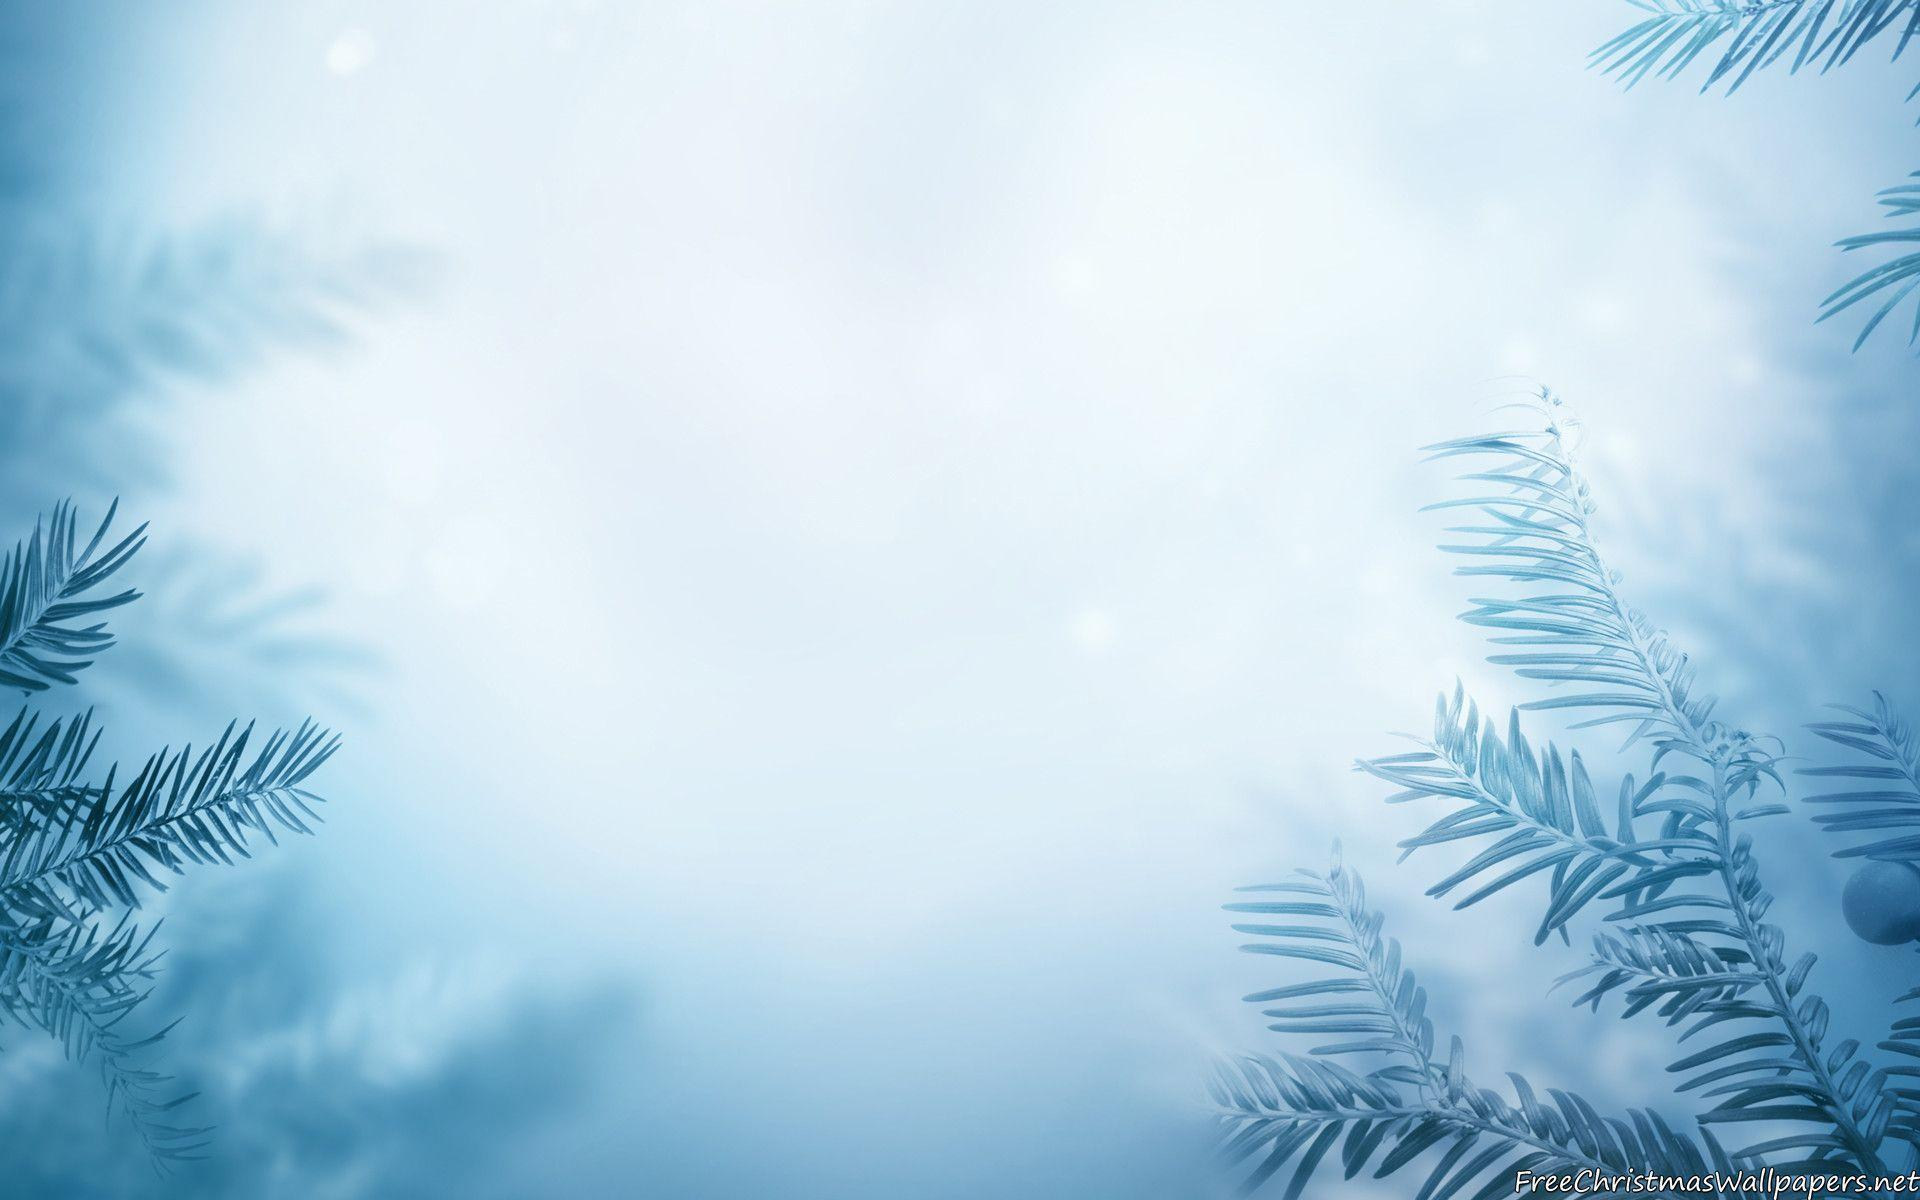 Winter Image Backgrounds 1920x1200